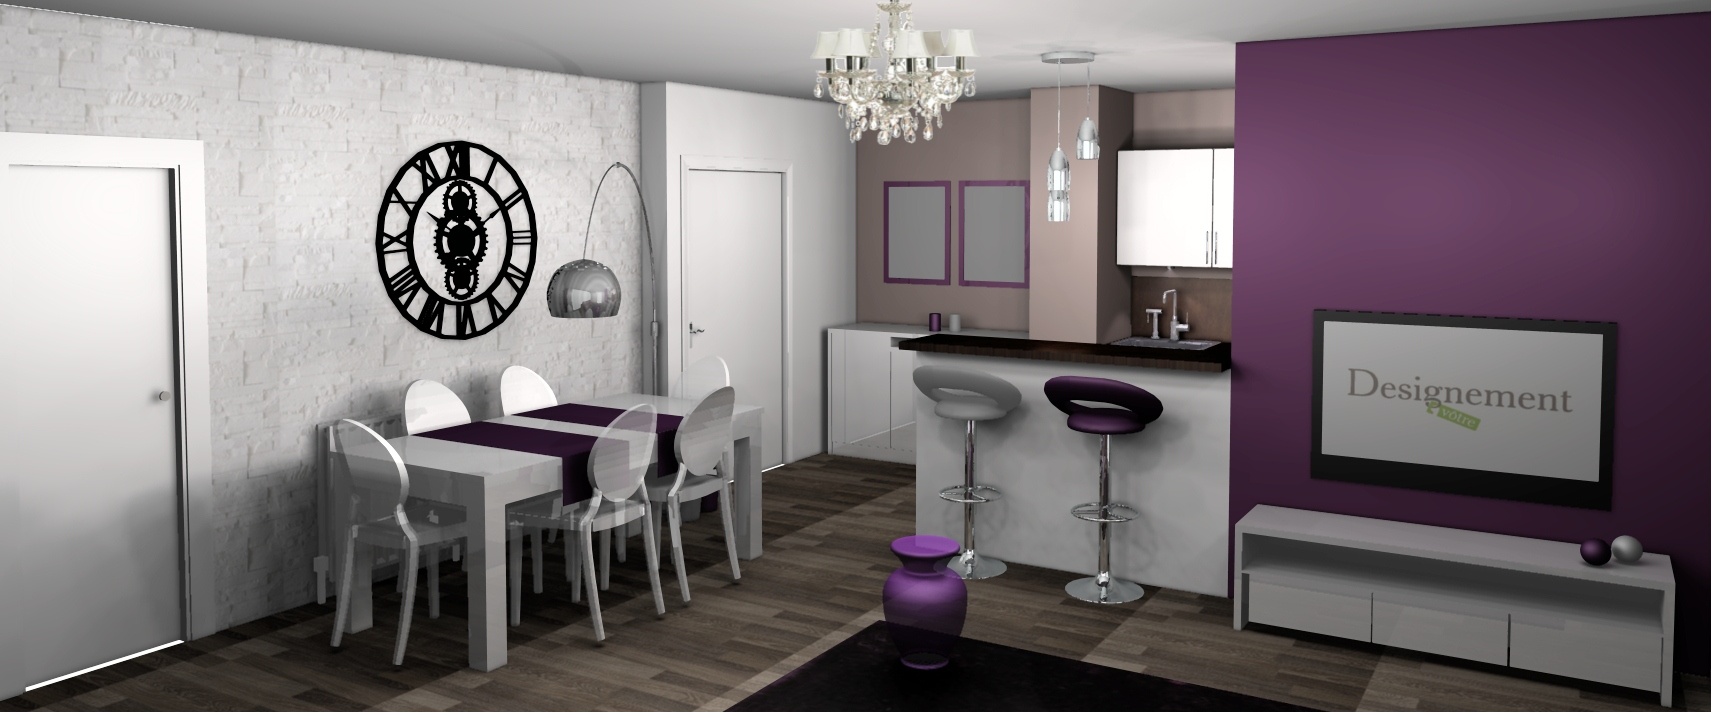 Mod le id e d co salle manger prune for Decoration salon mauve et gris